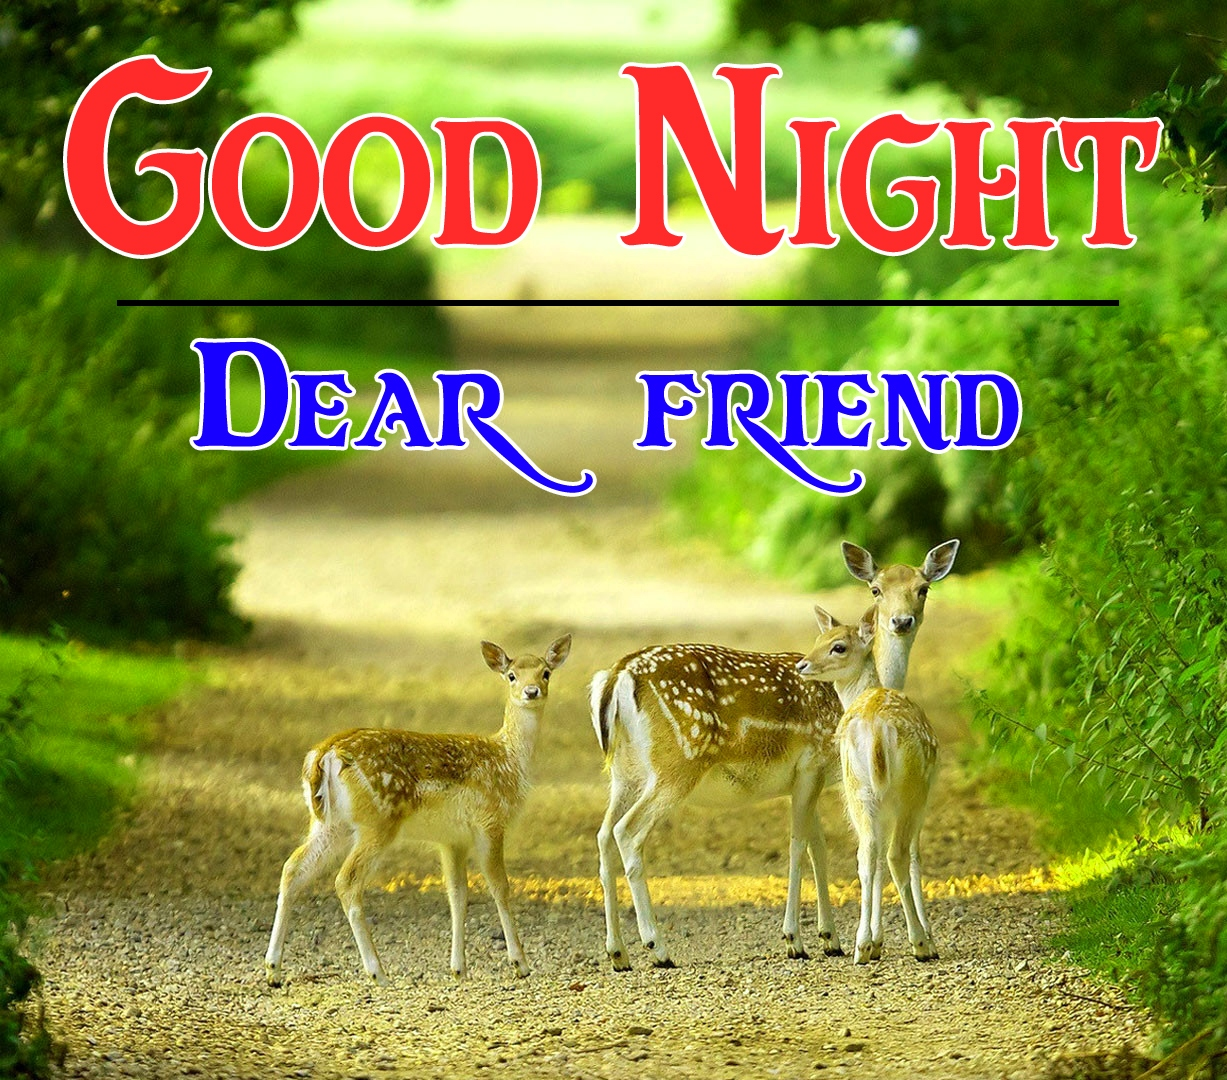 Good night wallpaper hd 100